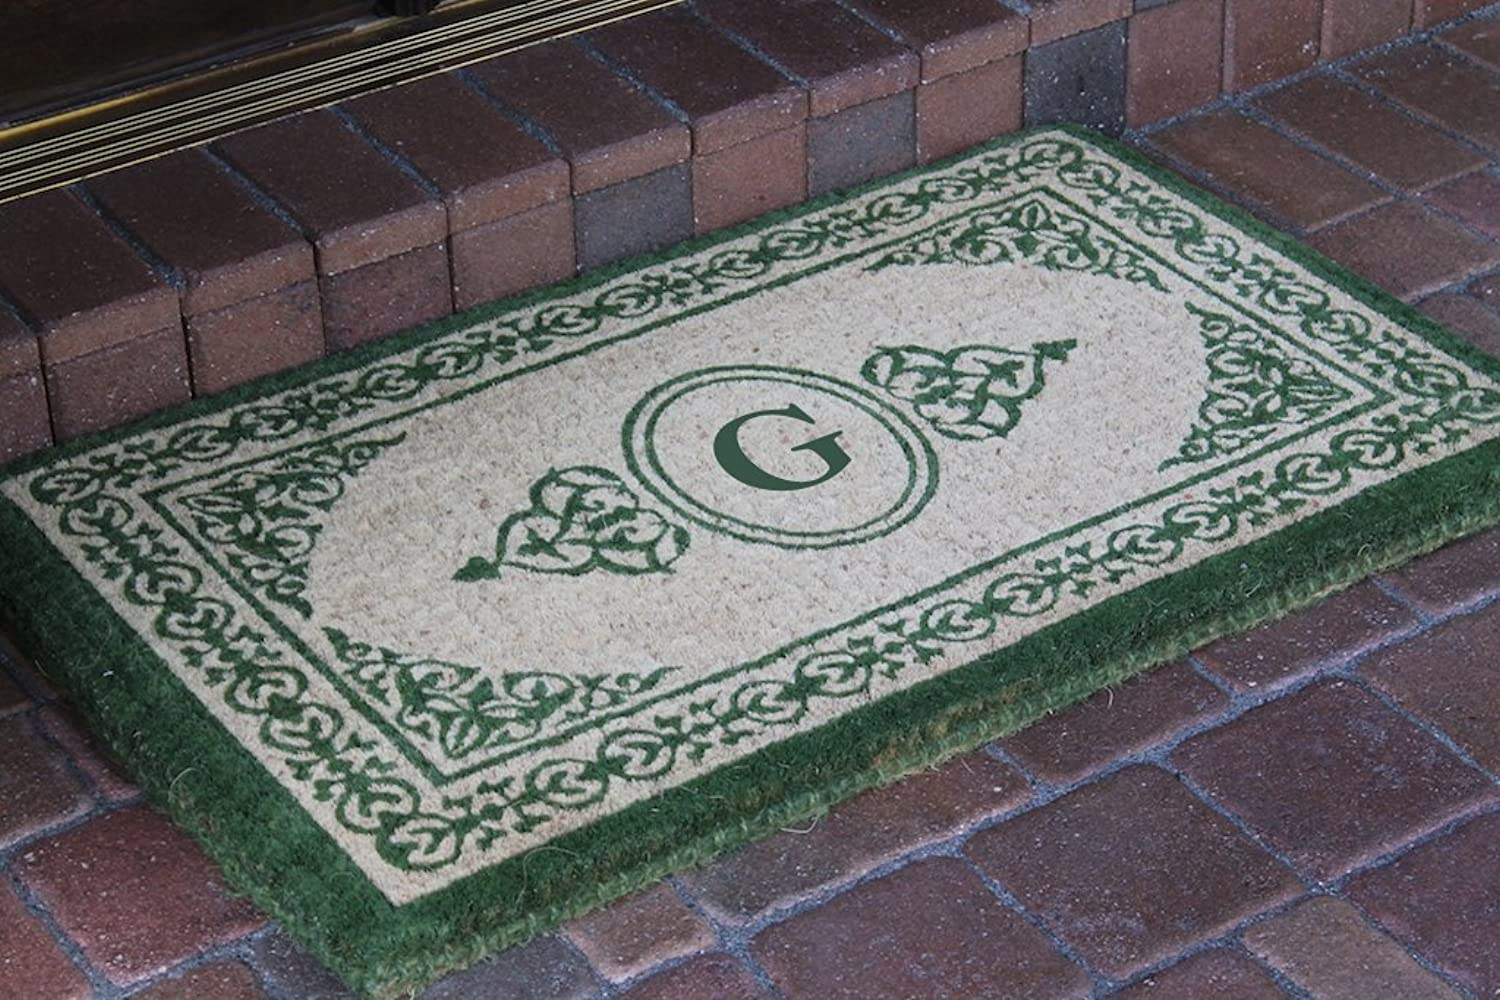 A1 HOME COLLECTIONS Hand-Crafted Green Filigree Decorative Border Extra-Thick Doormat-A1HOME200060-G